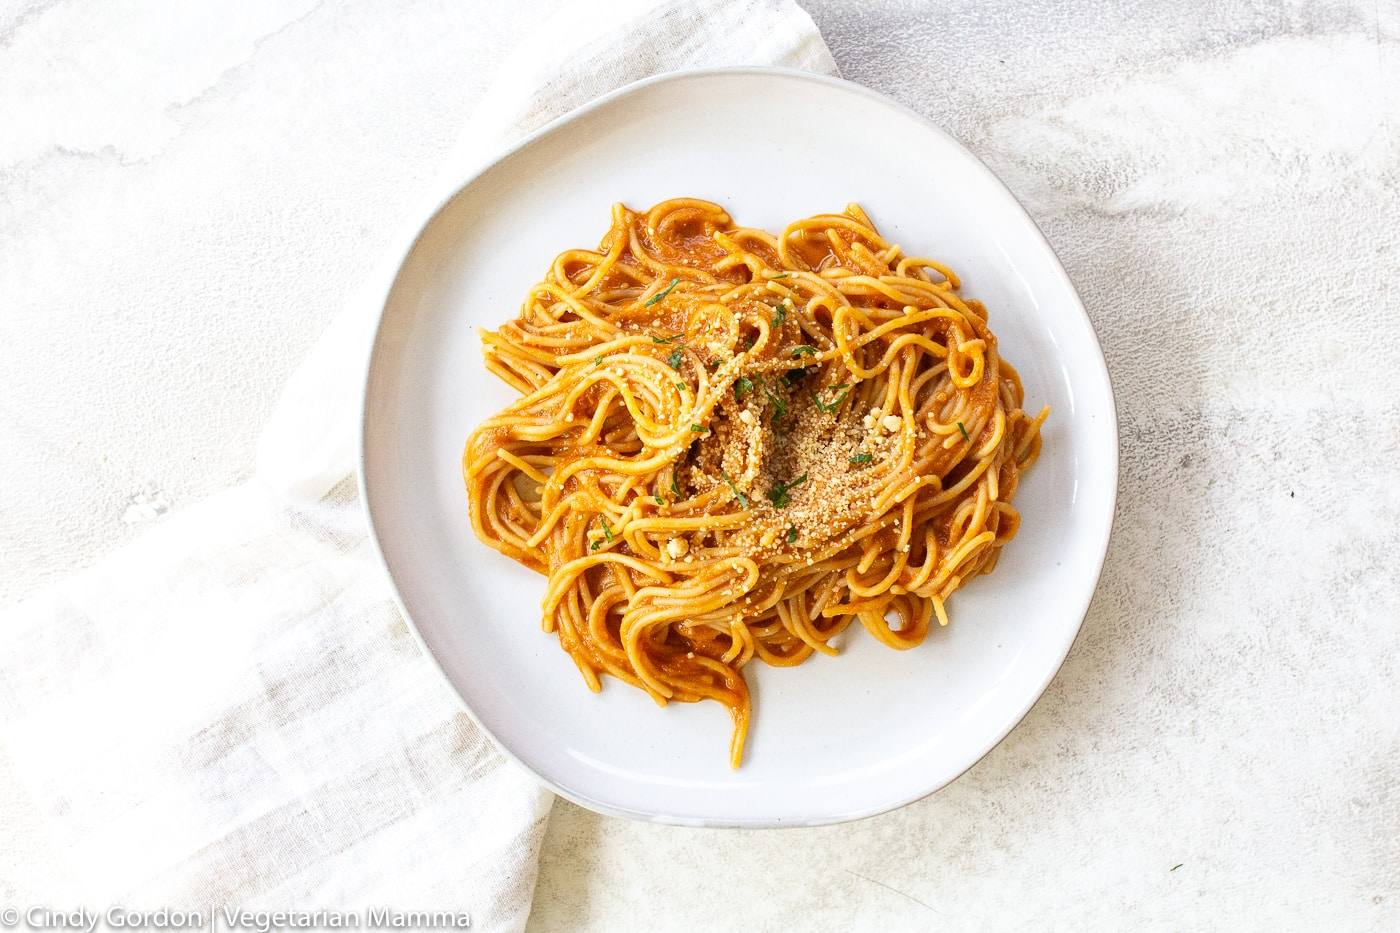 Vegetarian Spaghetti Sauce on white plate with white background